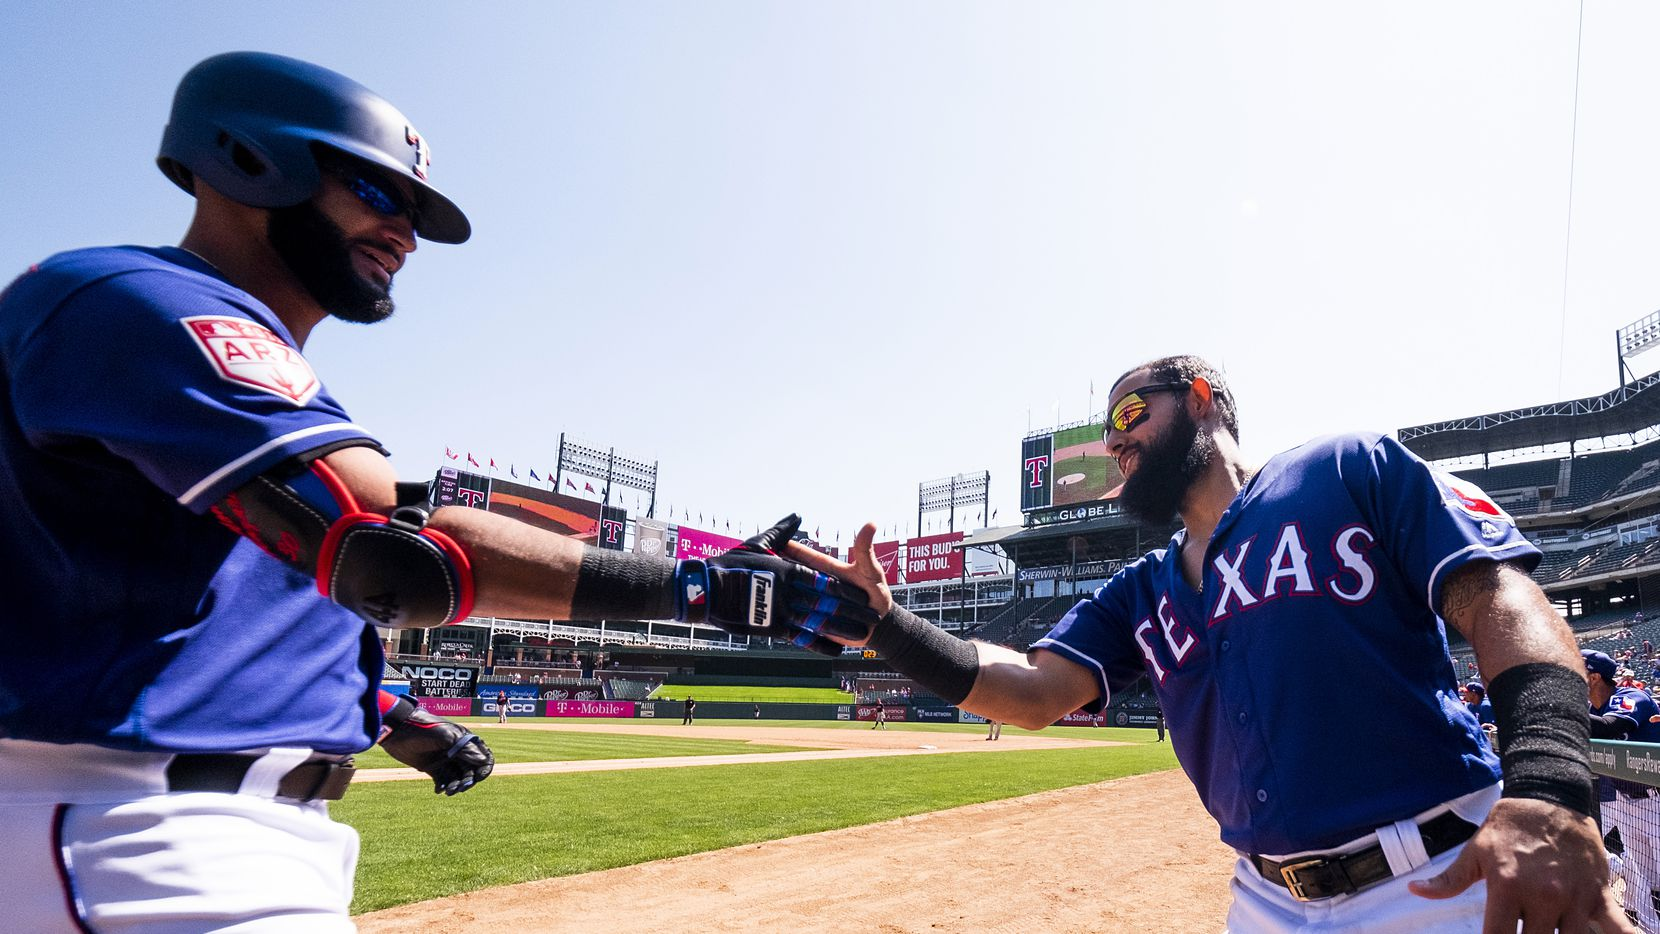 Texas Rangers outfielder Nomar Mazara (left) celebrates with second baseman Rougned Odor after hitting a three-run home run during the third inning of a spring training baseball game against the Cleveland Indians at Globe Life Park on Tuesday, March 26, 2019, in Arlington.